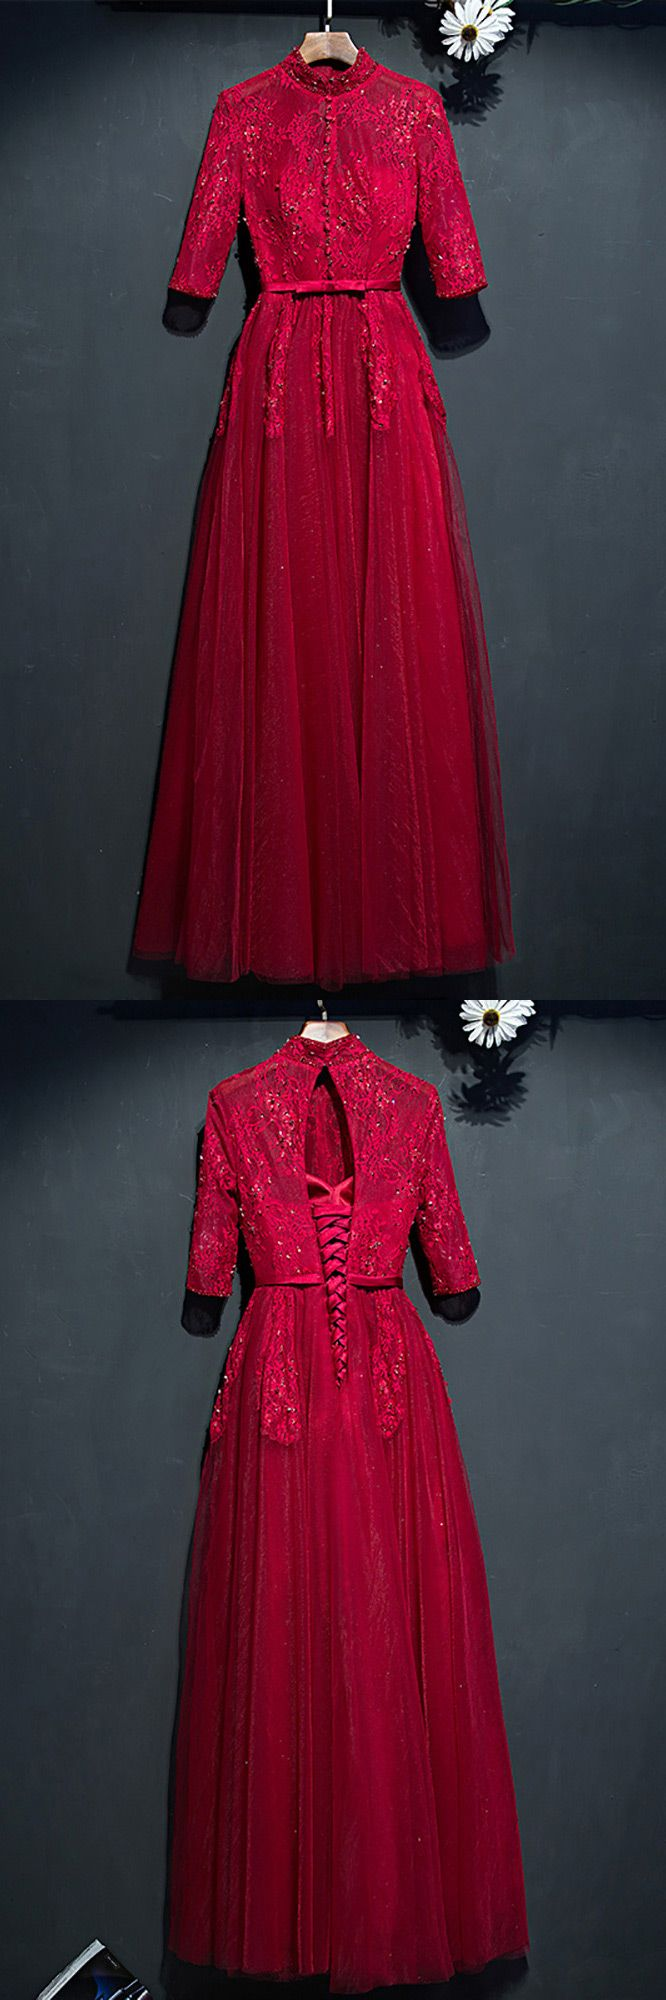 Unique high neck burgundy long party dress with lace sleeves